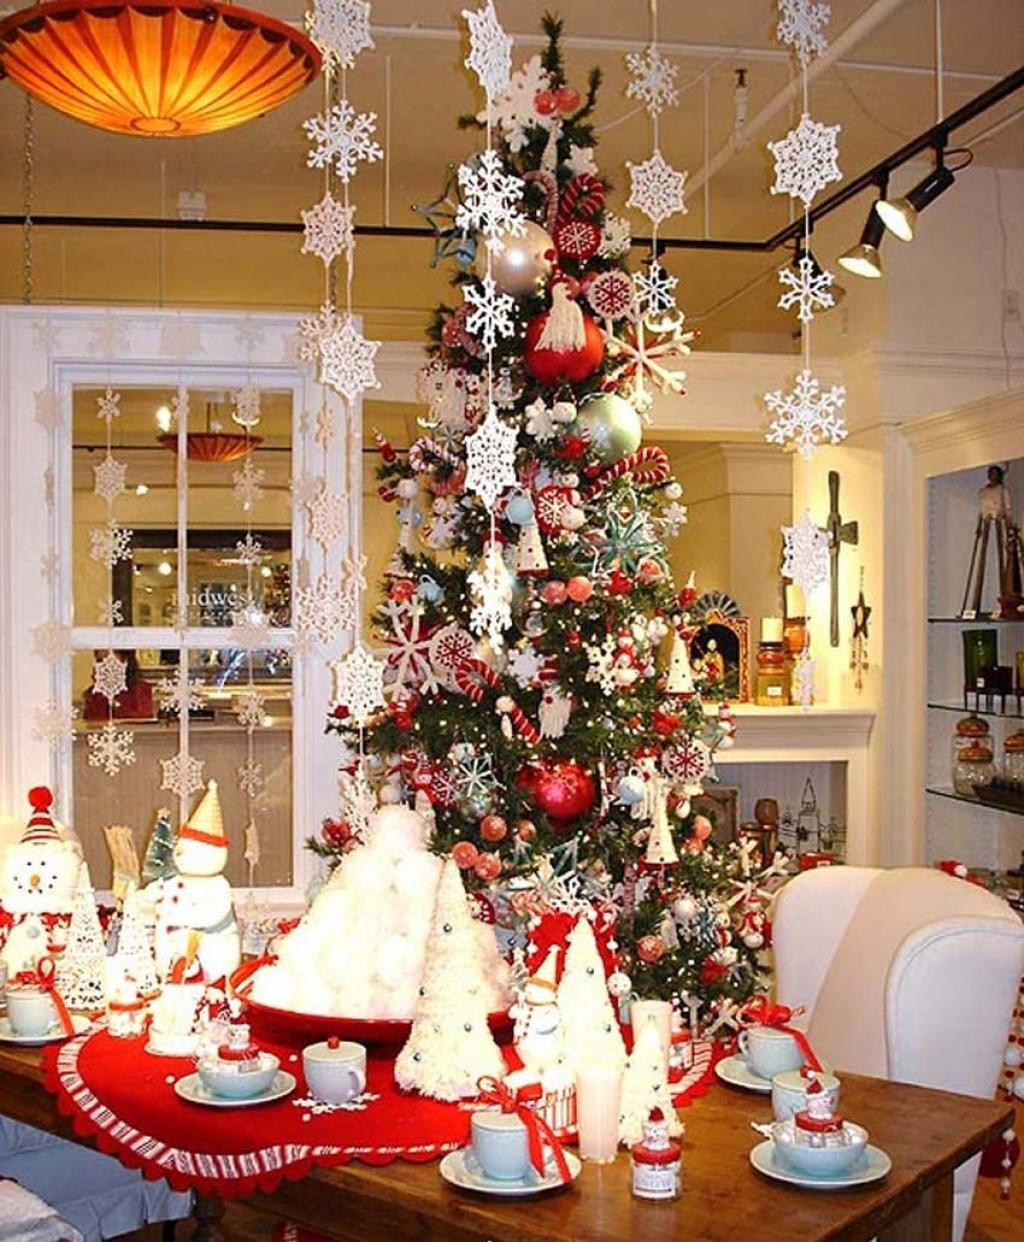 #B92012 40 Christmas Table Decors Ideas To Inspire Your Pinterest  5503 Decorations De Noel Rose 1024x1242 px @ aertt.com